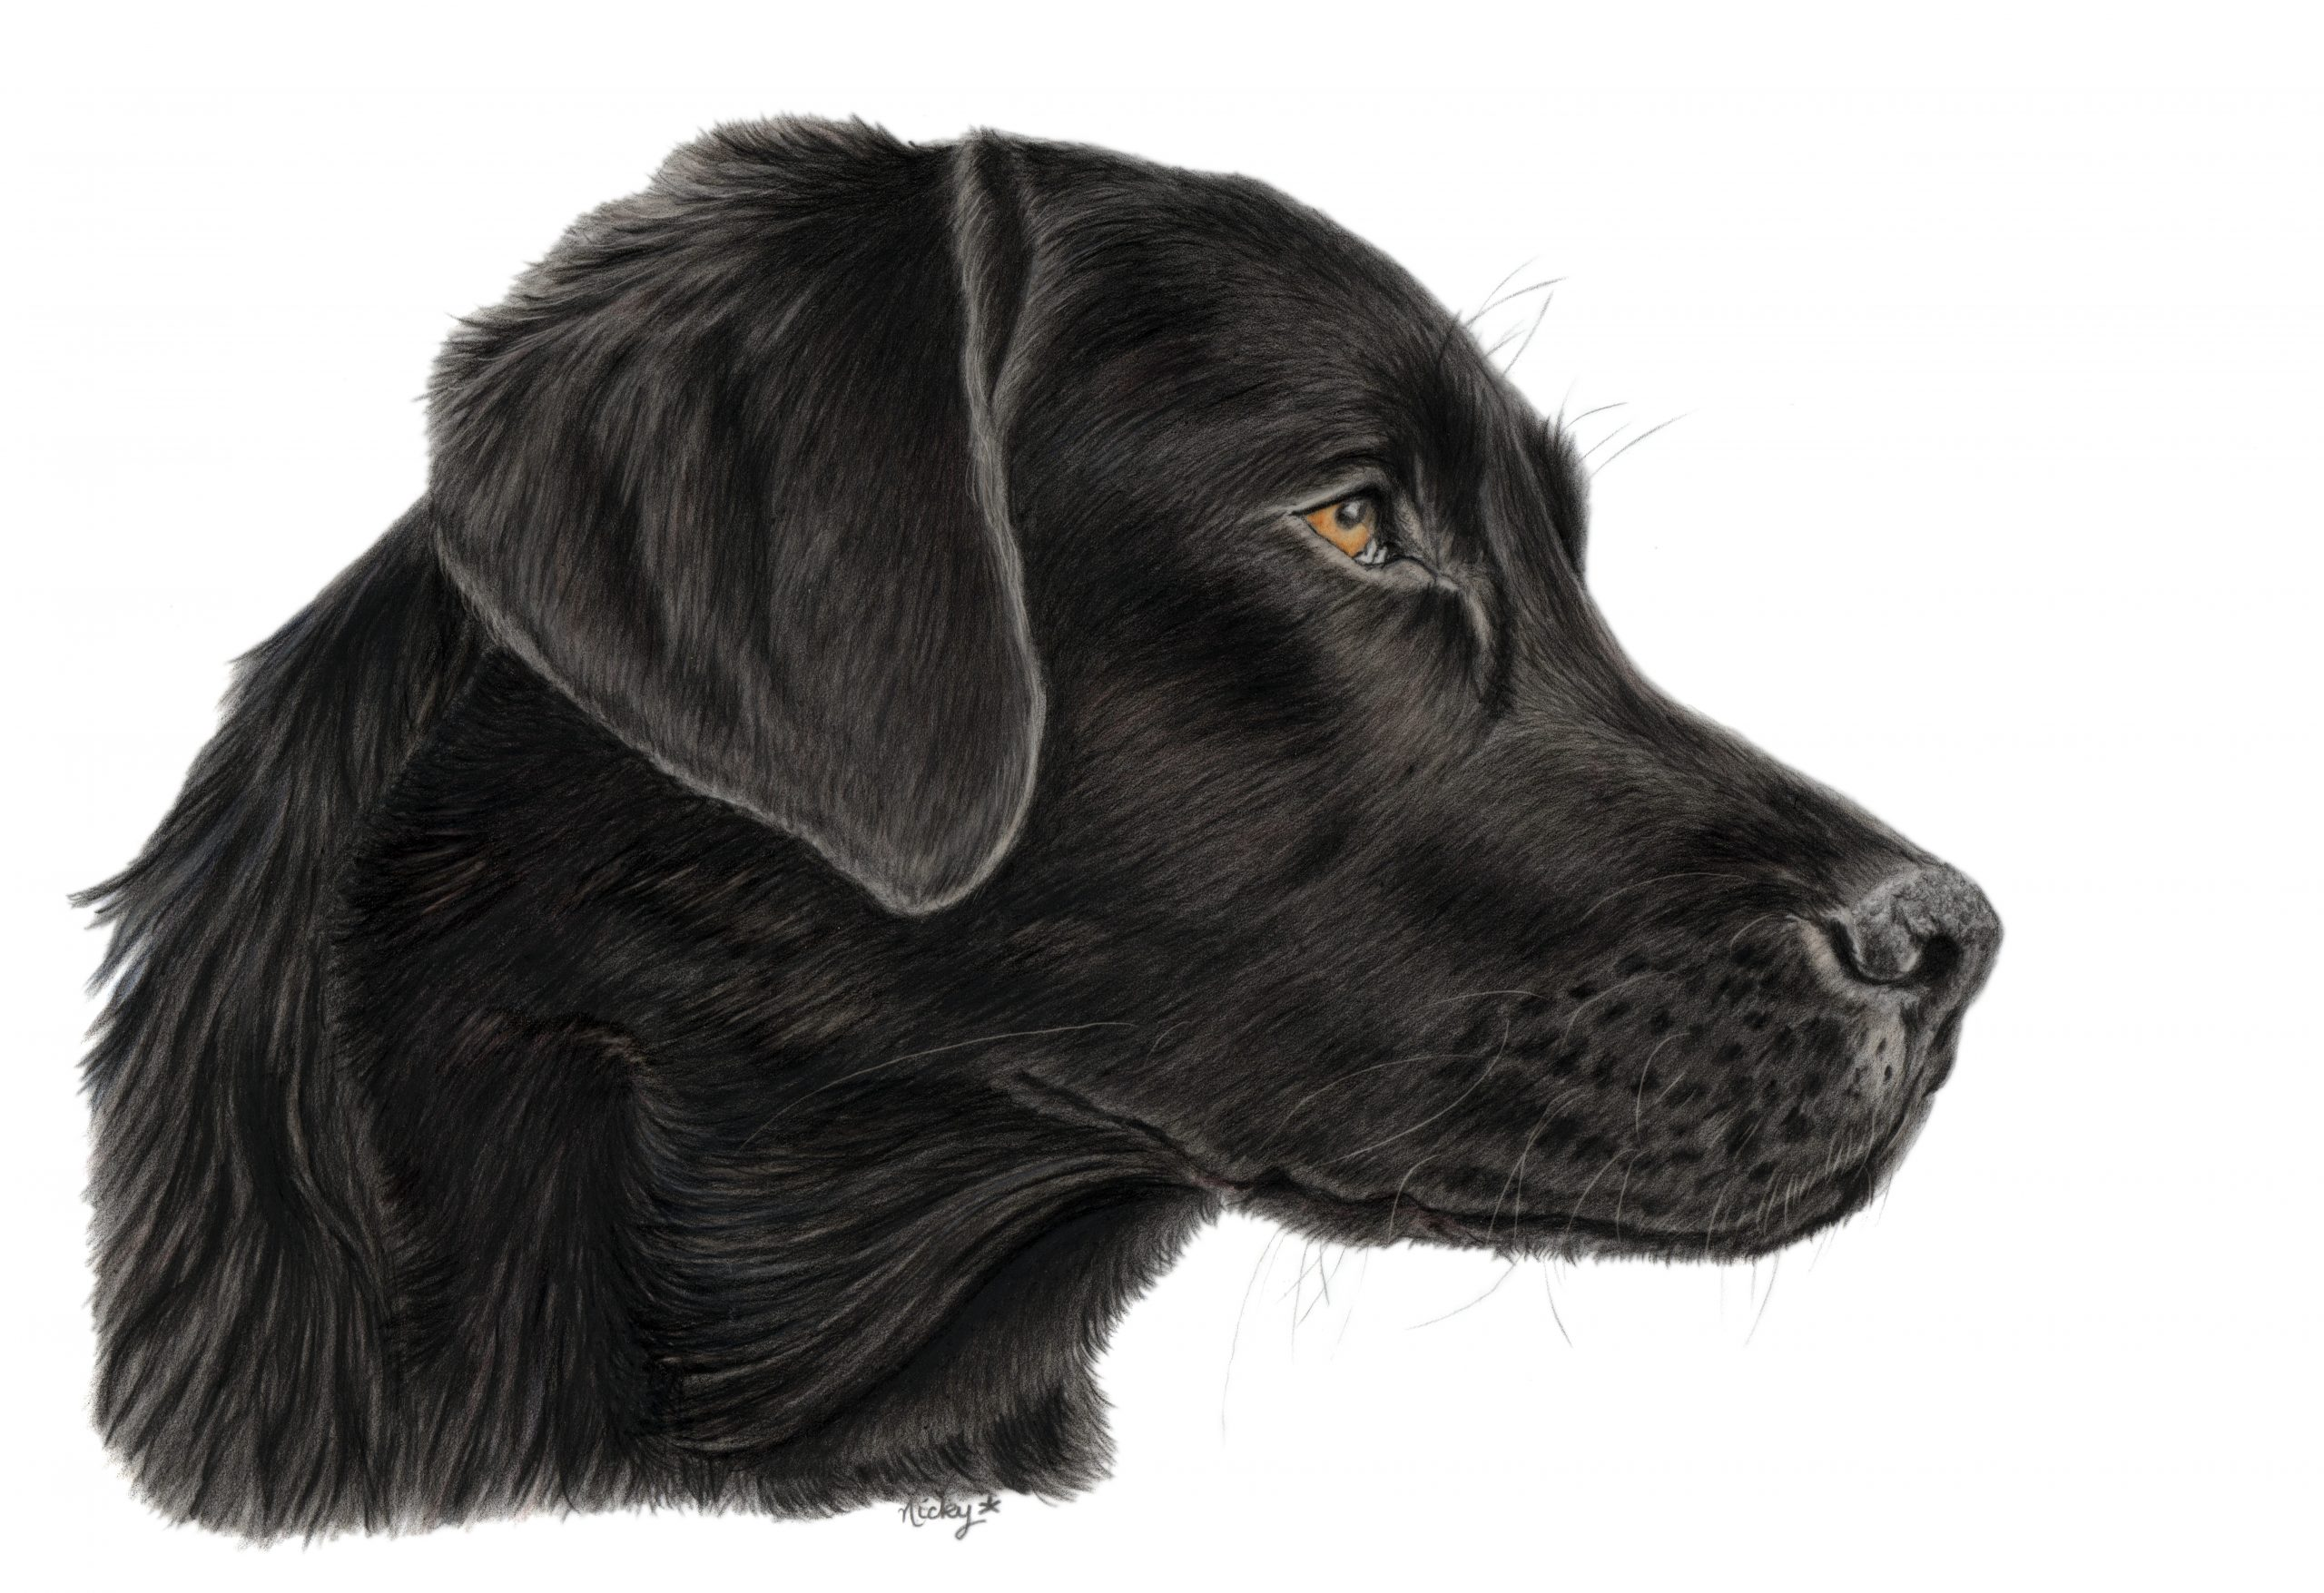 Black Labrador drawing